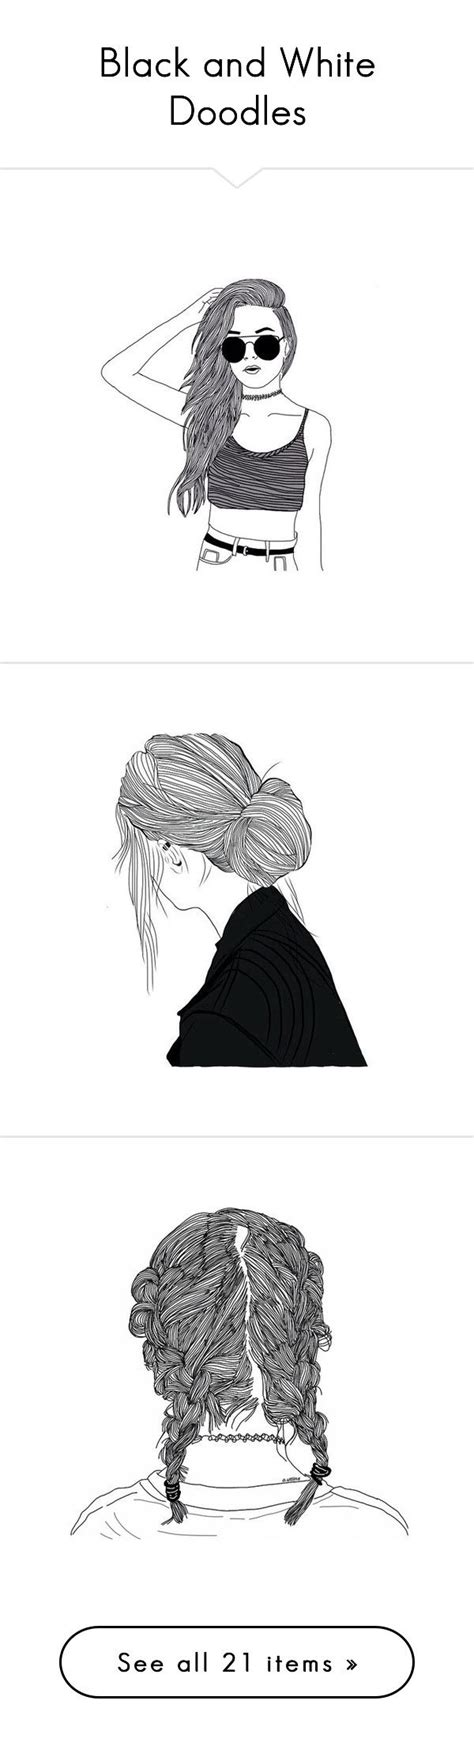 doodle drawing illustrator 20 best images about draw on dibujo